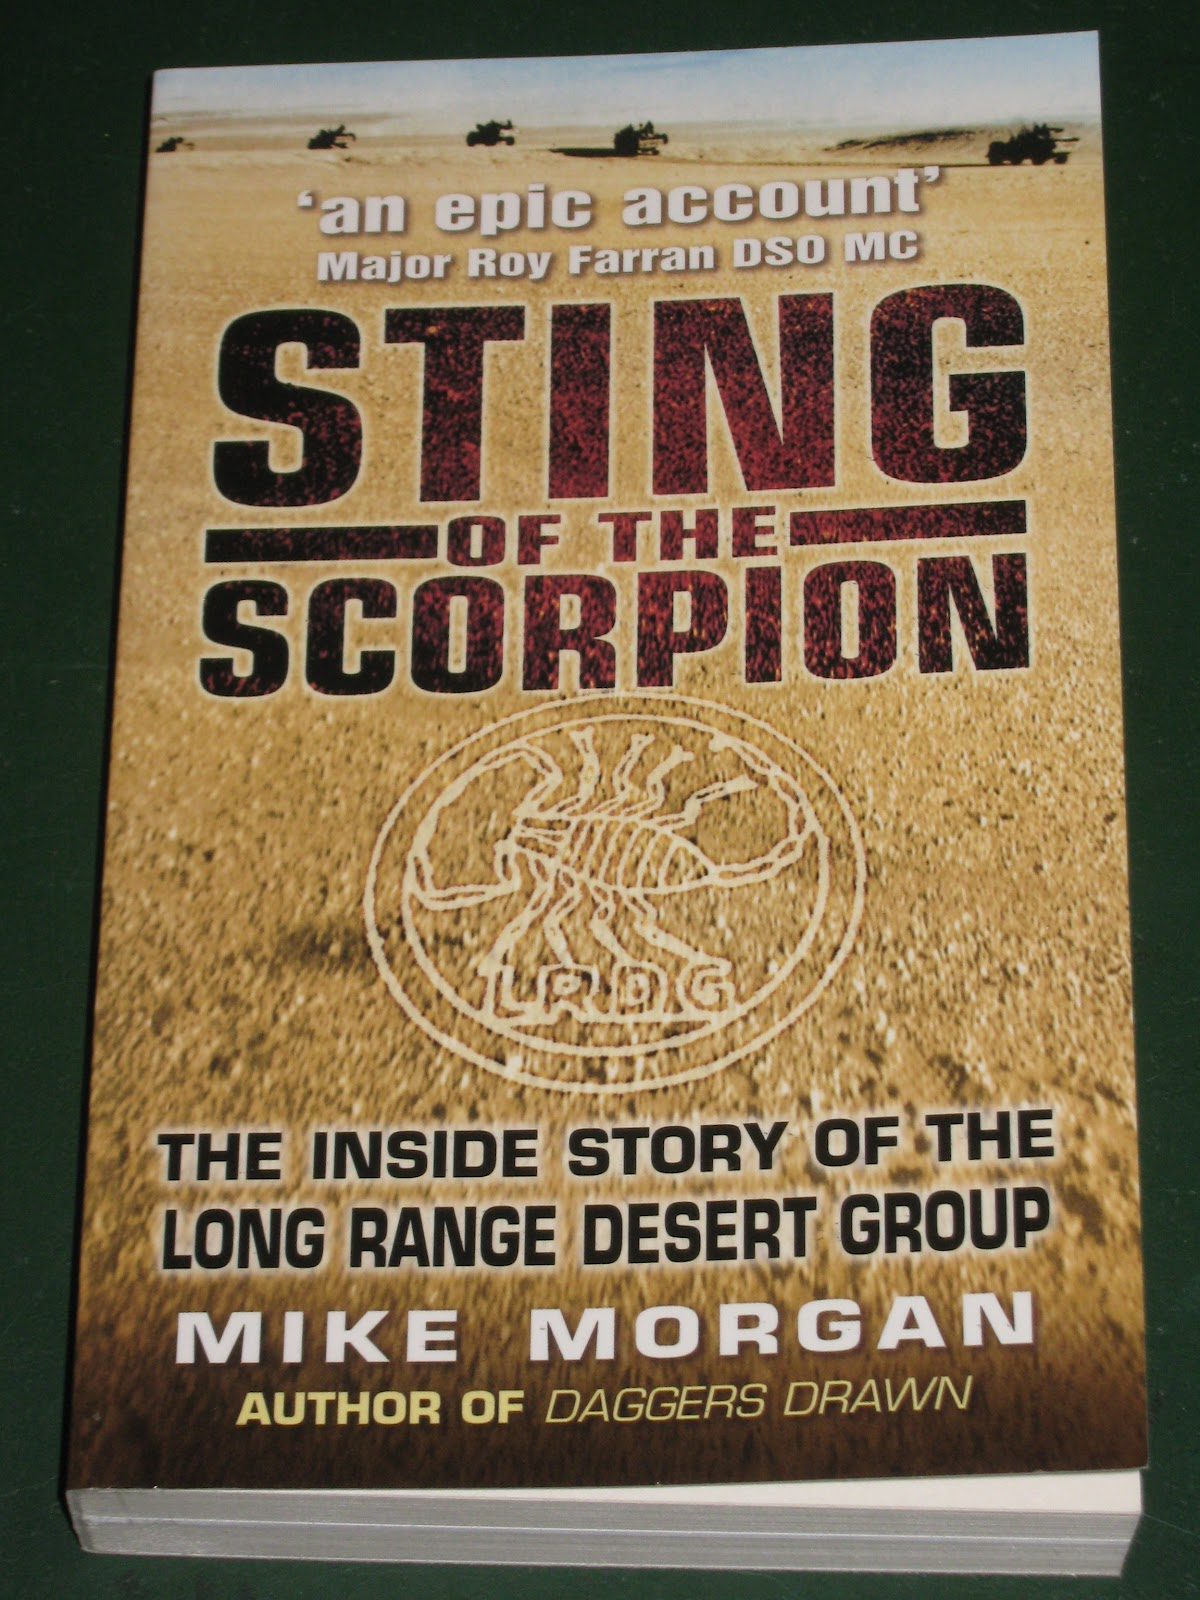 book review of scorpions The house of the scorpion the book is not as long as farmer would have liked because of its young adult audience as the house of the scorpion drew on so much.